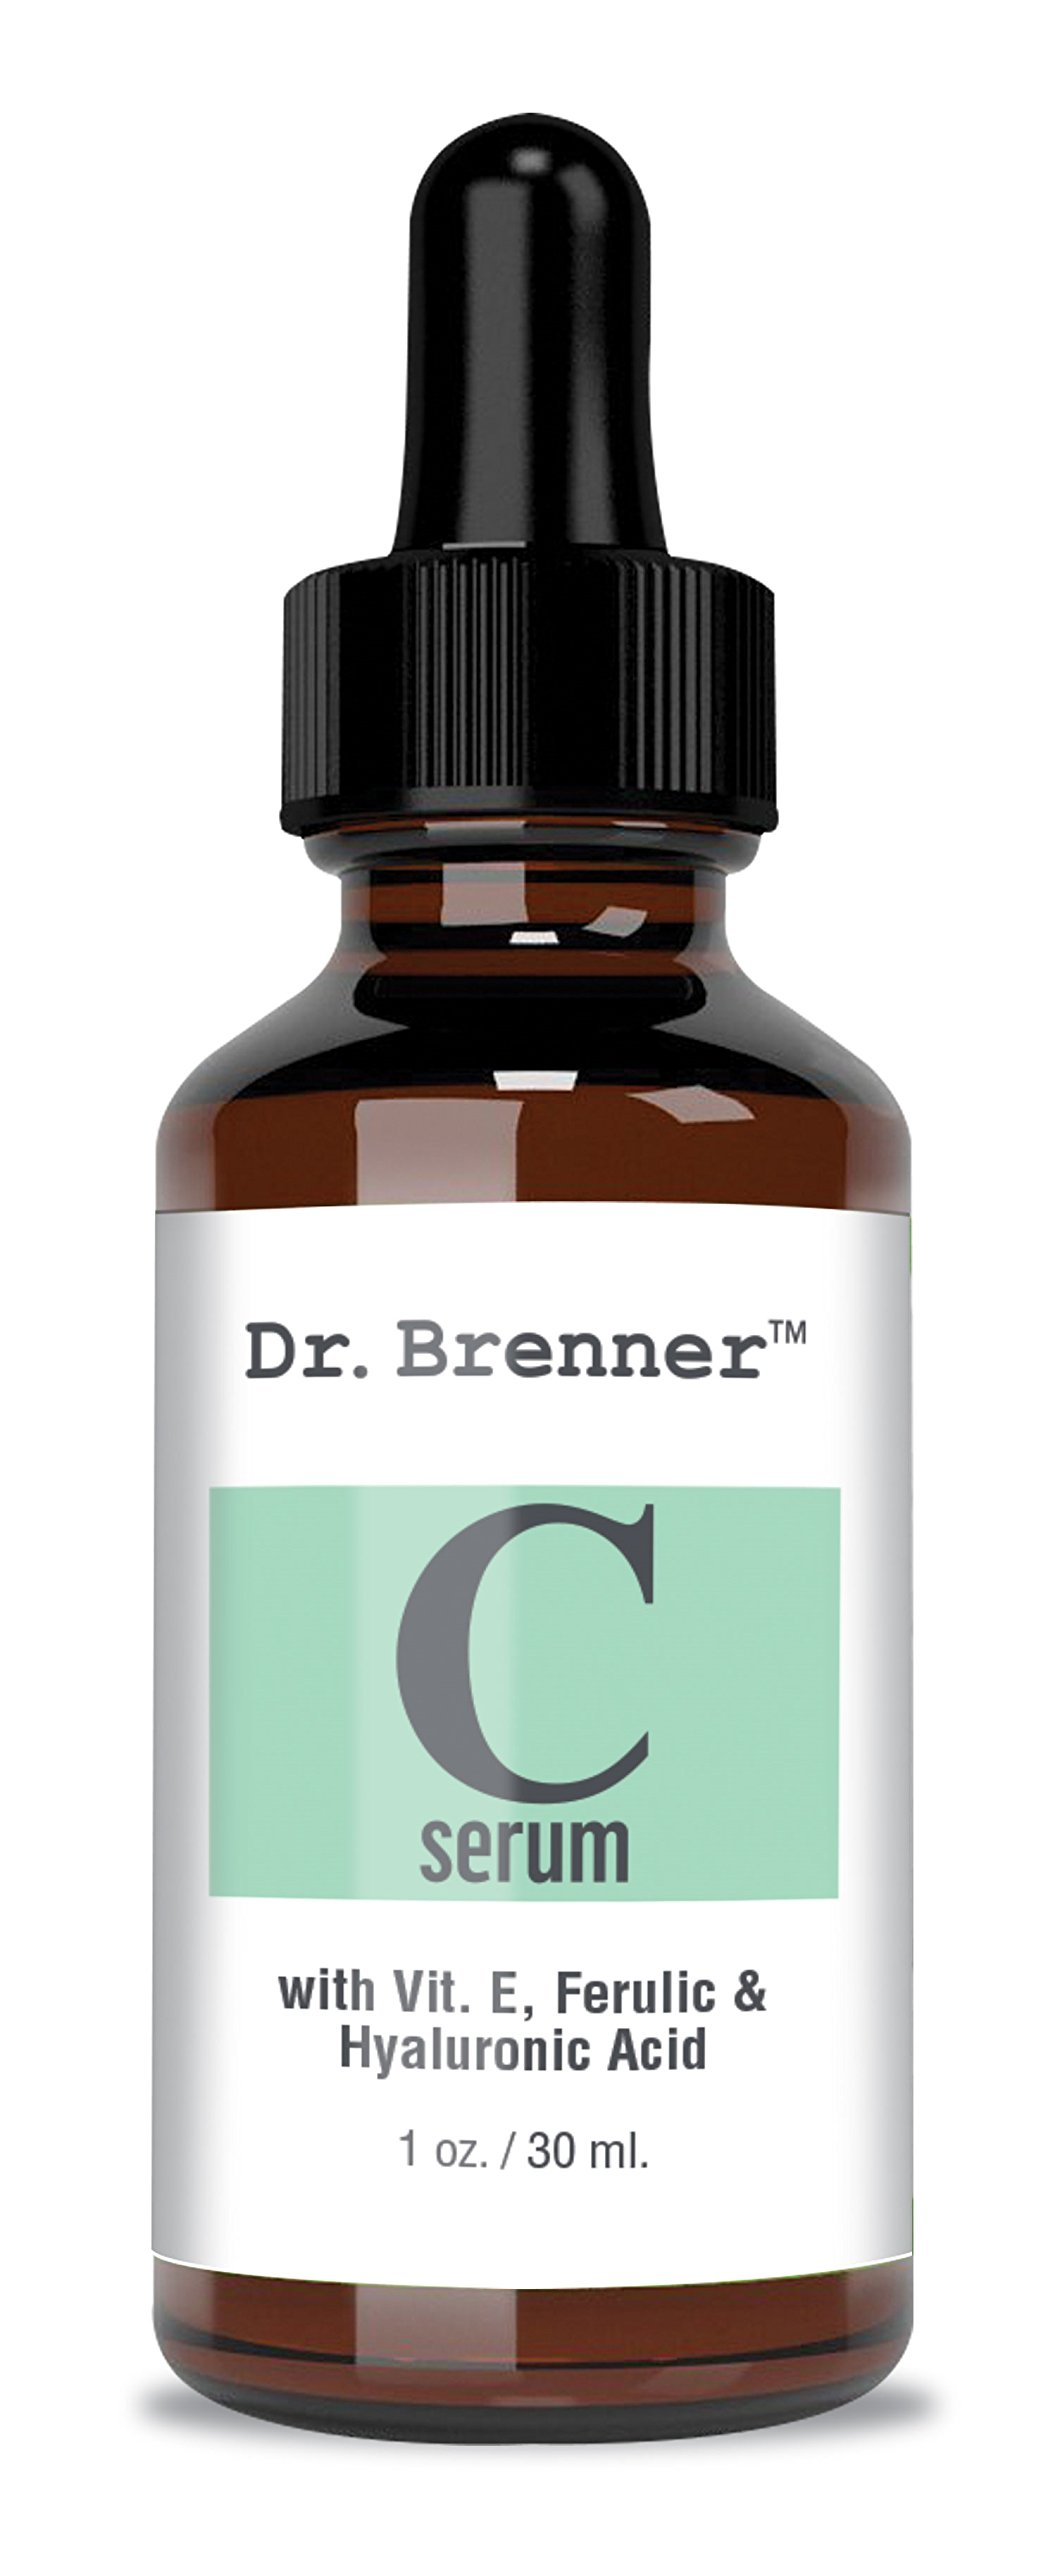 Vitamin C Serum 20% Pure L-Ascorbic Acid, Ferulic Acid, Vitamin E and Hyaluronic Acid for Face and Eyes Natural Anti Aging Anti Wrinkle 1oz. by Dr. Brenner by Dr. Brenner